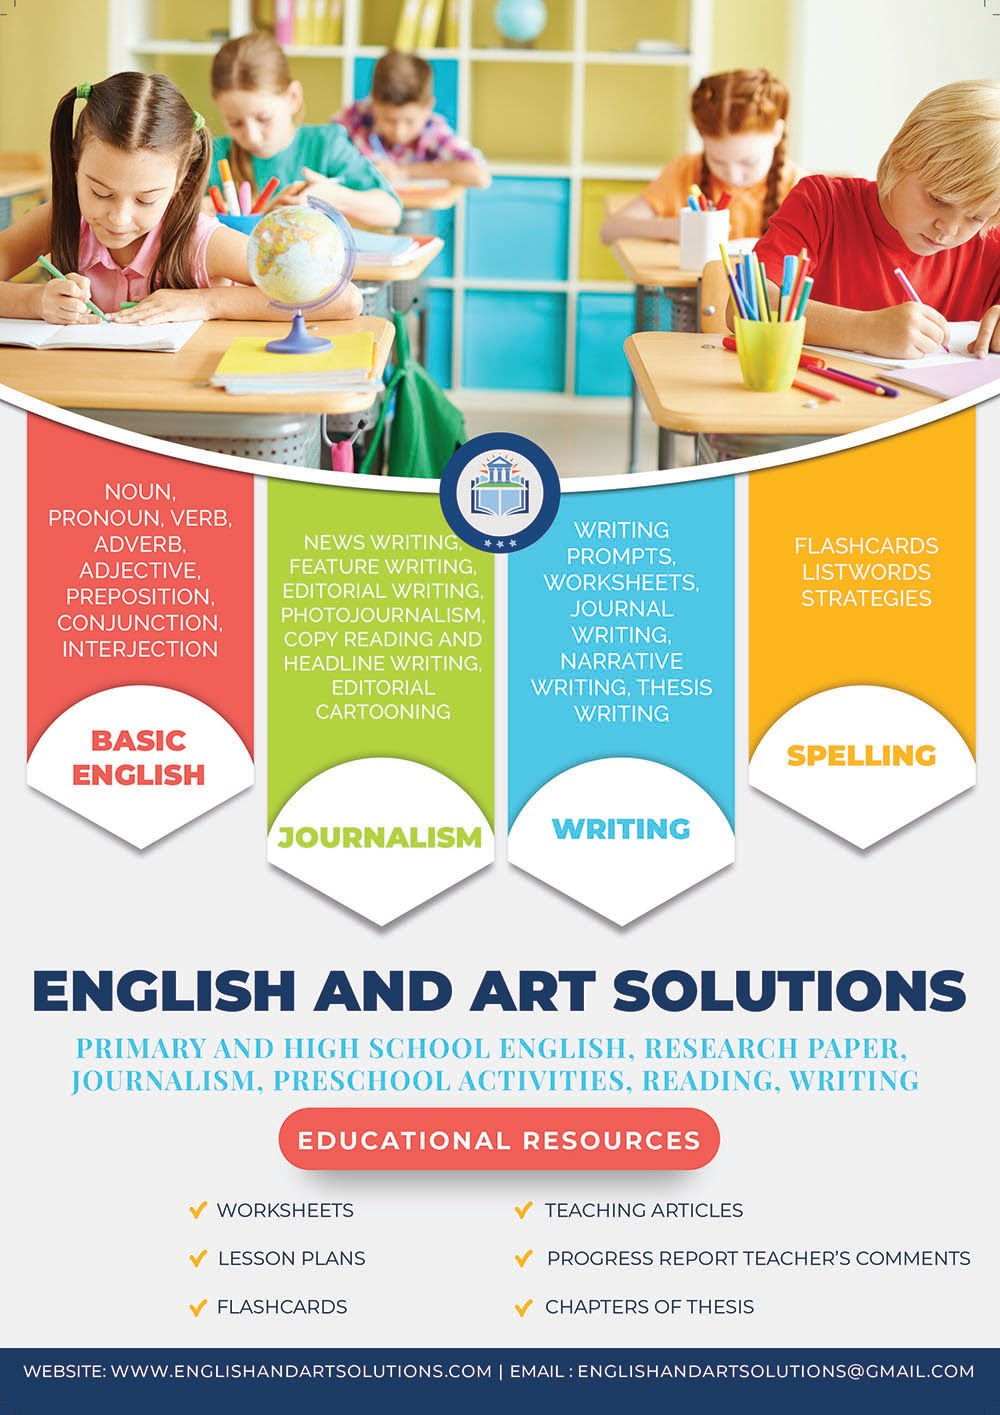 FREE ENGLISH WORKSHEETS AND MORE!